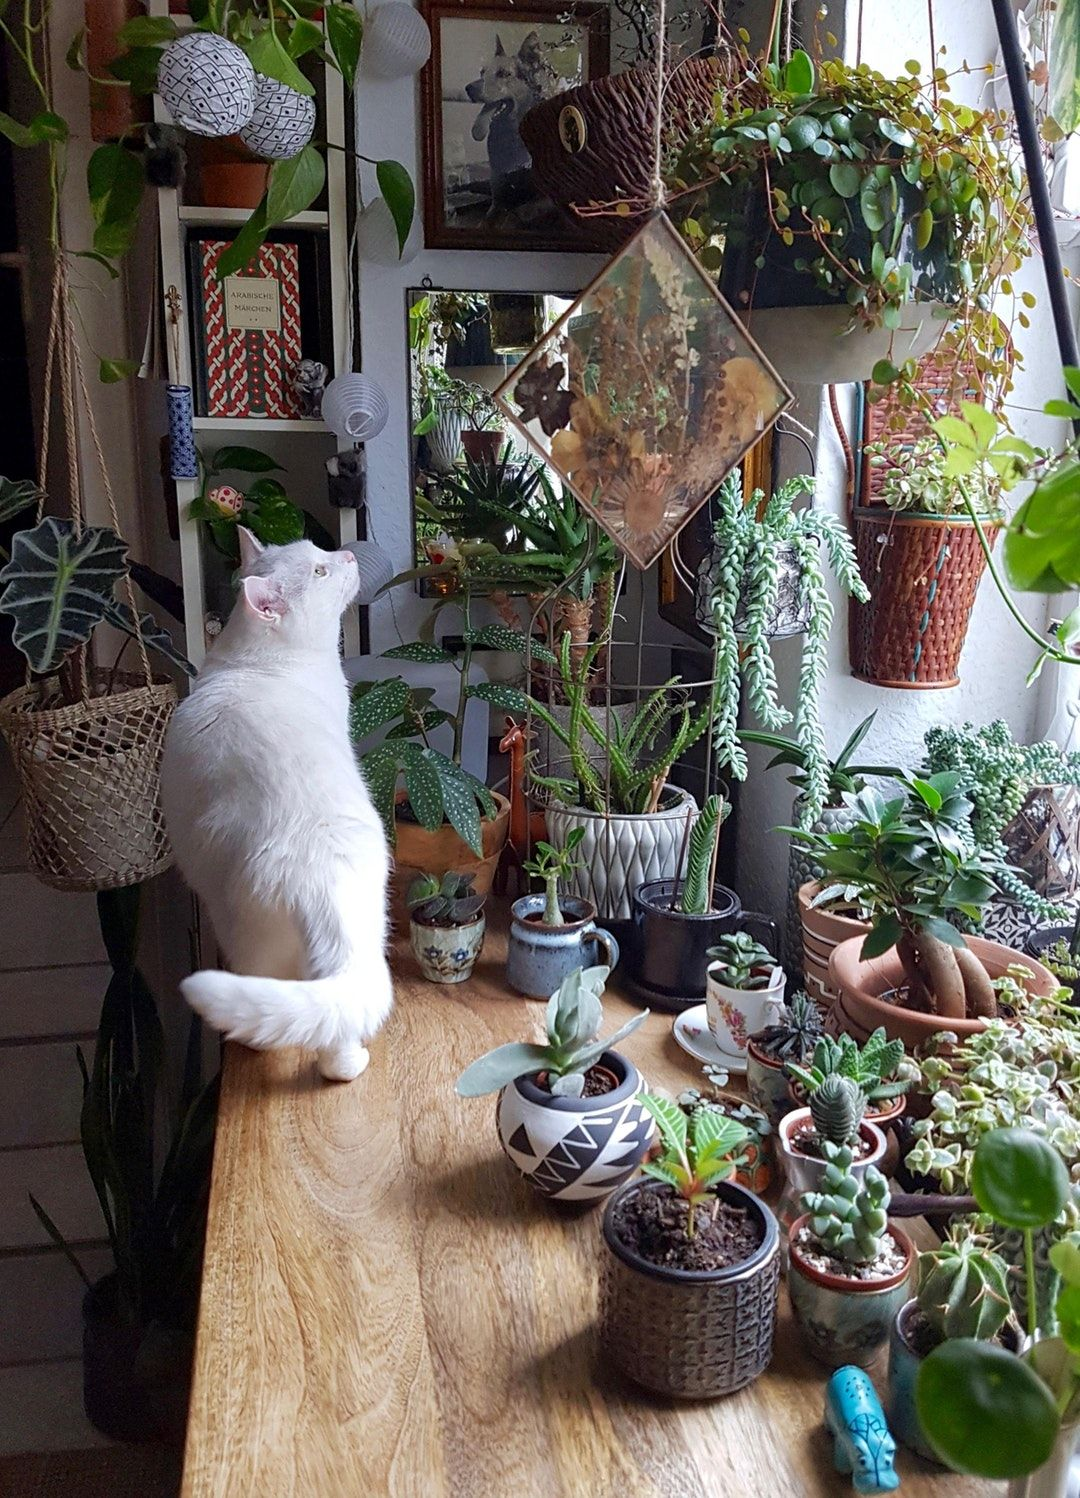 my cat and plant babies soaking in the spring sunshine